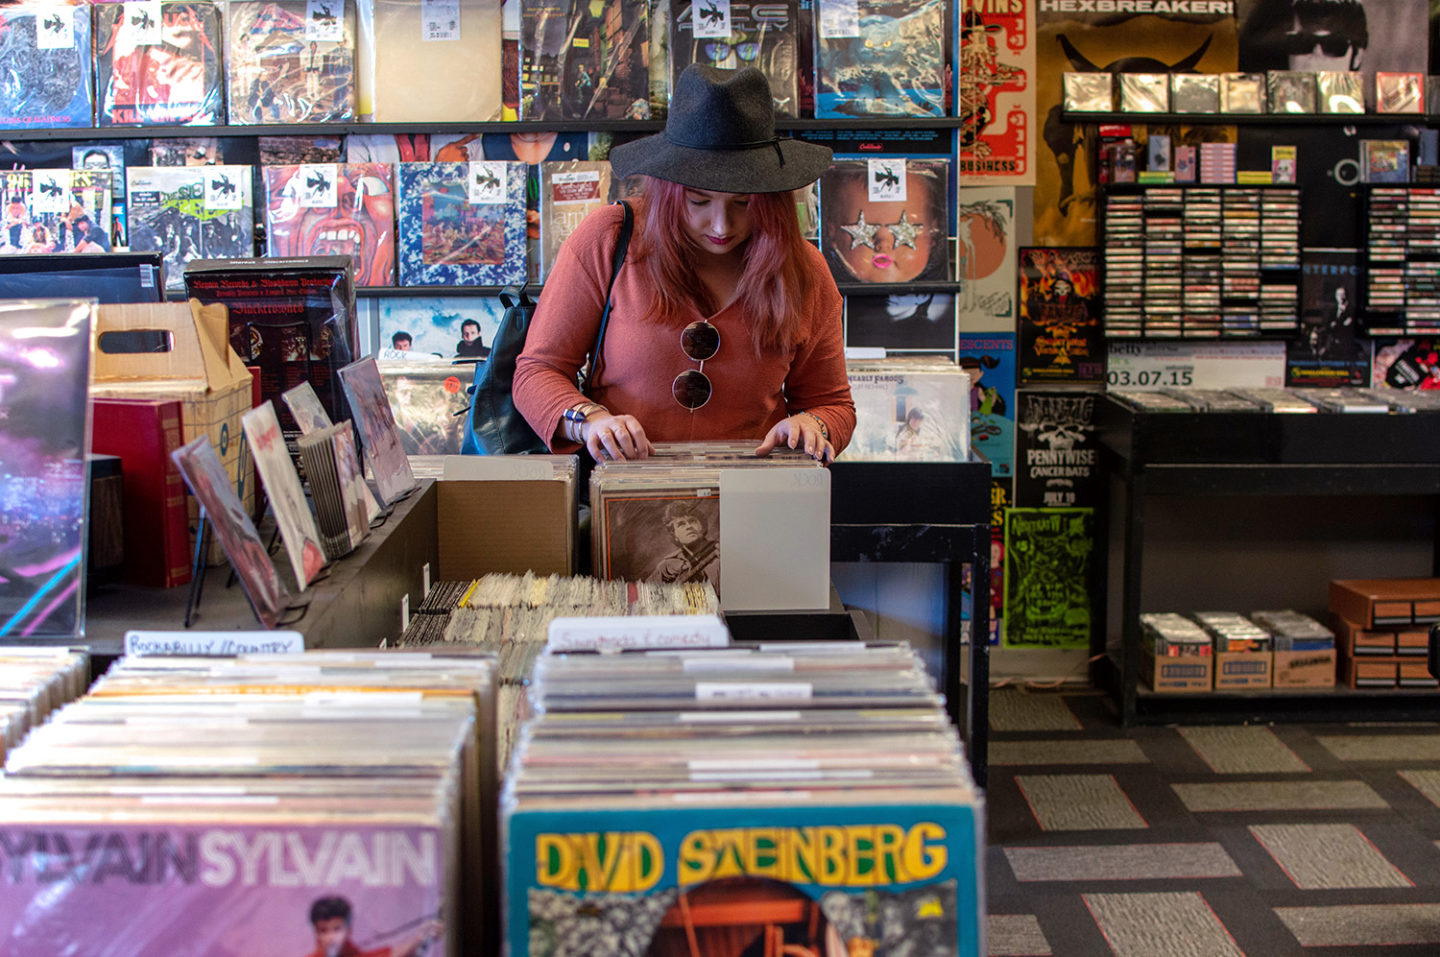 New in STL: An Afternoon at The Record Space